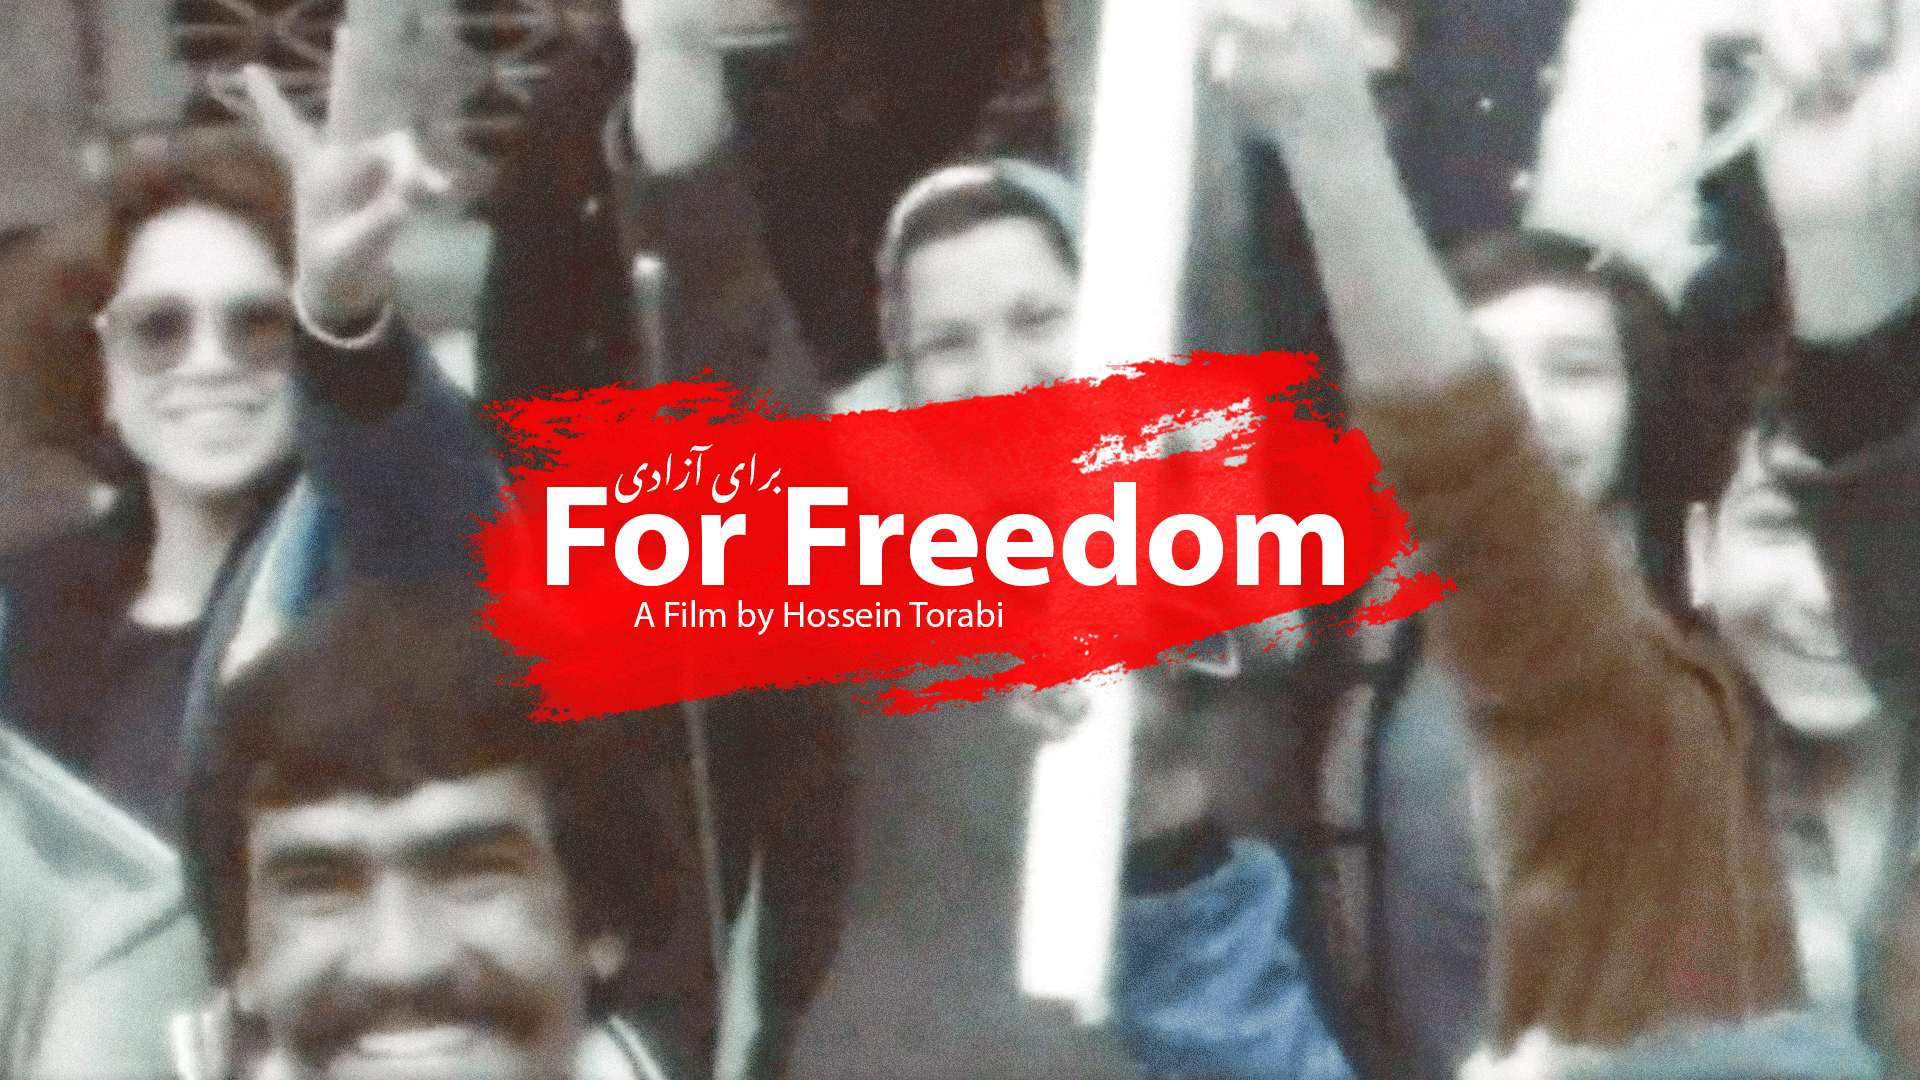 For Freedom (1979)